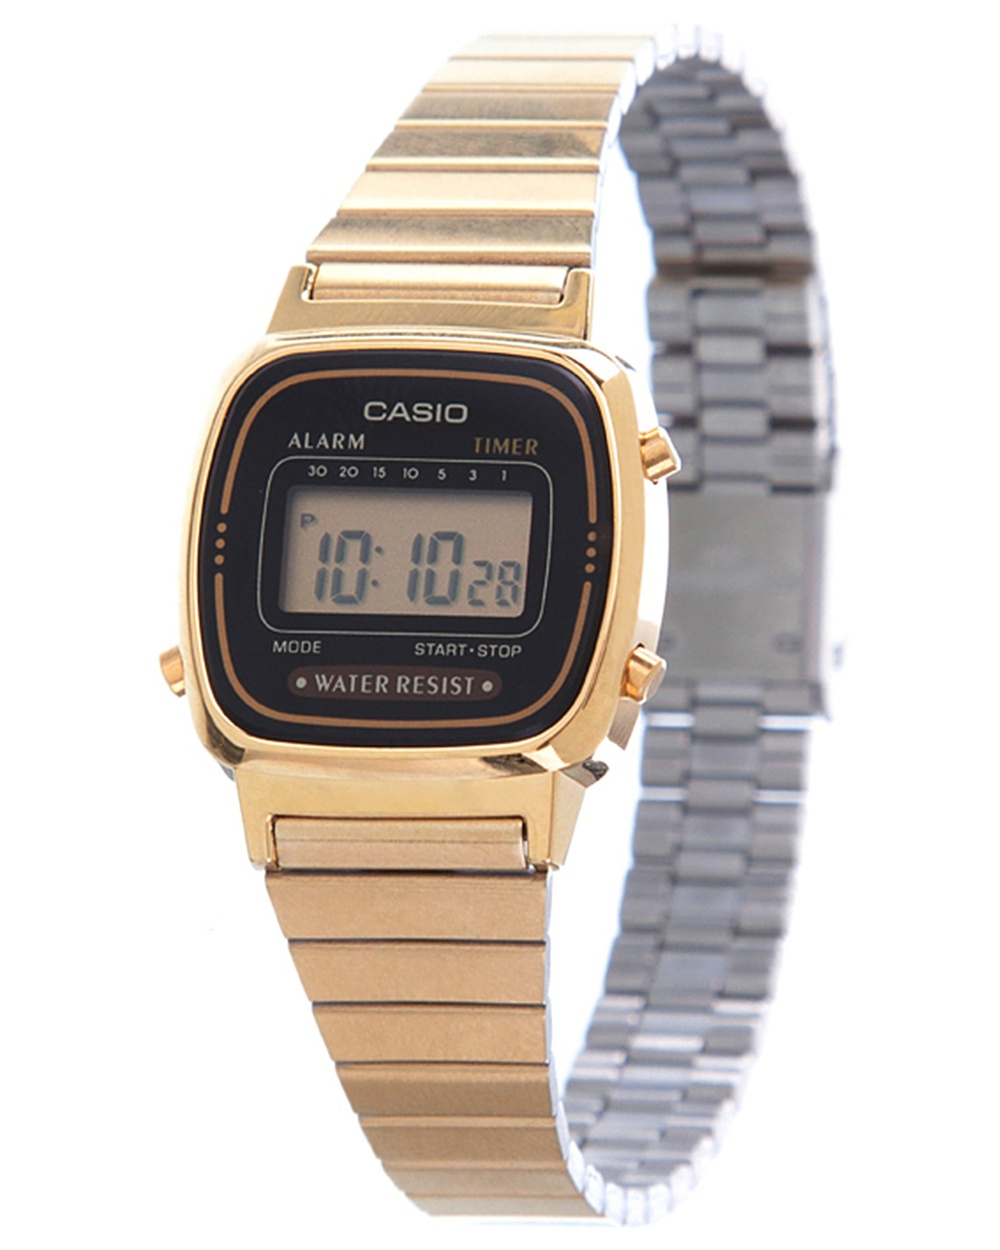 Digital WR Time Stop Watch Gold Steel Band by Casio Online | THE ICONIC | Australia